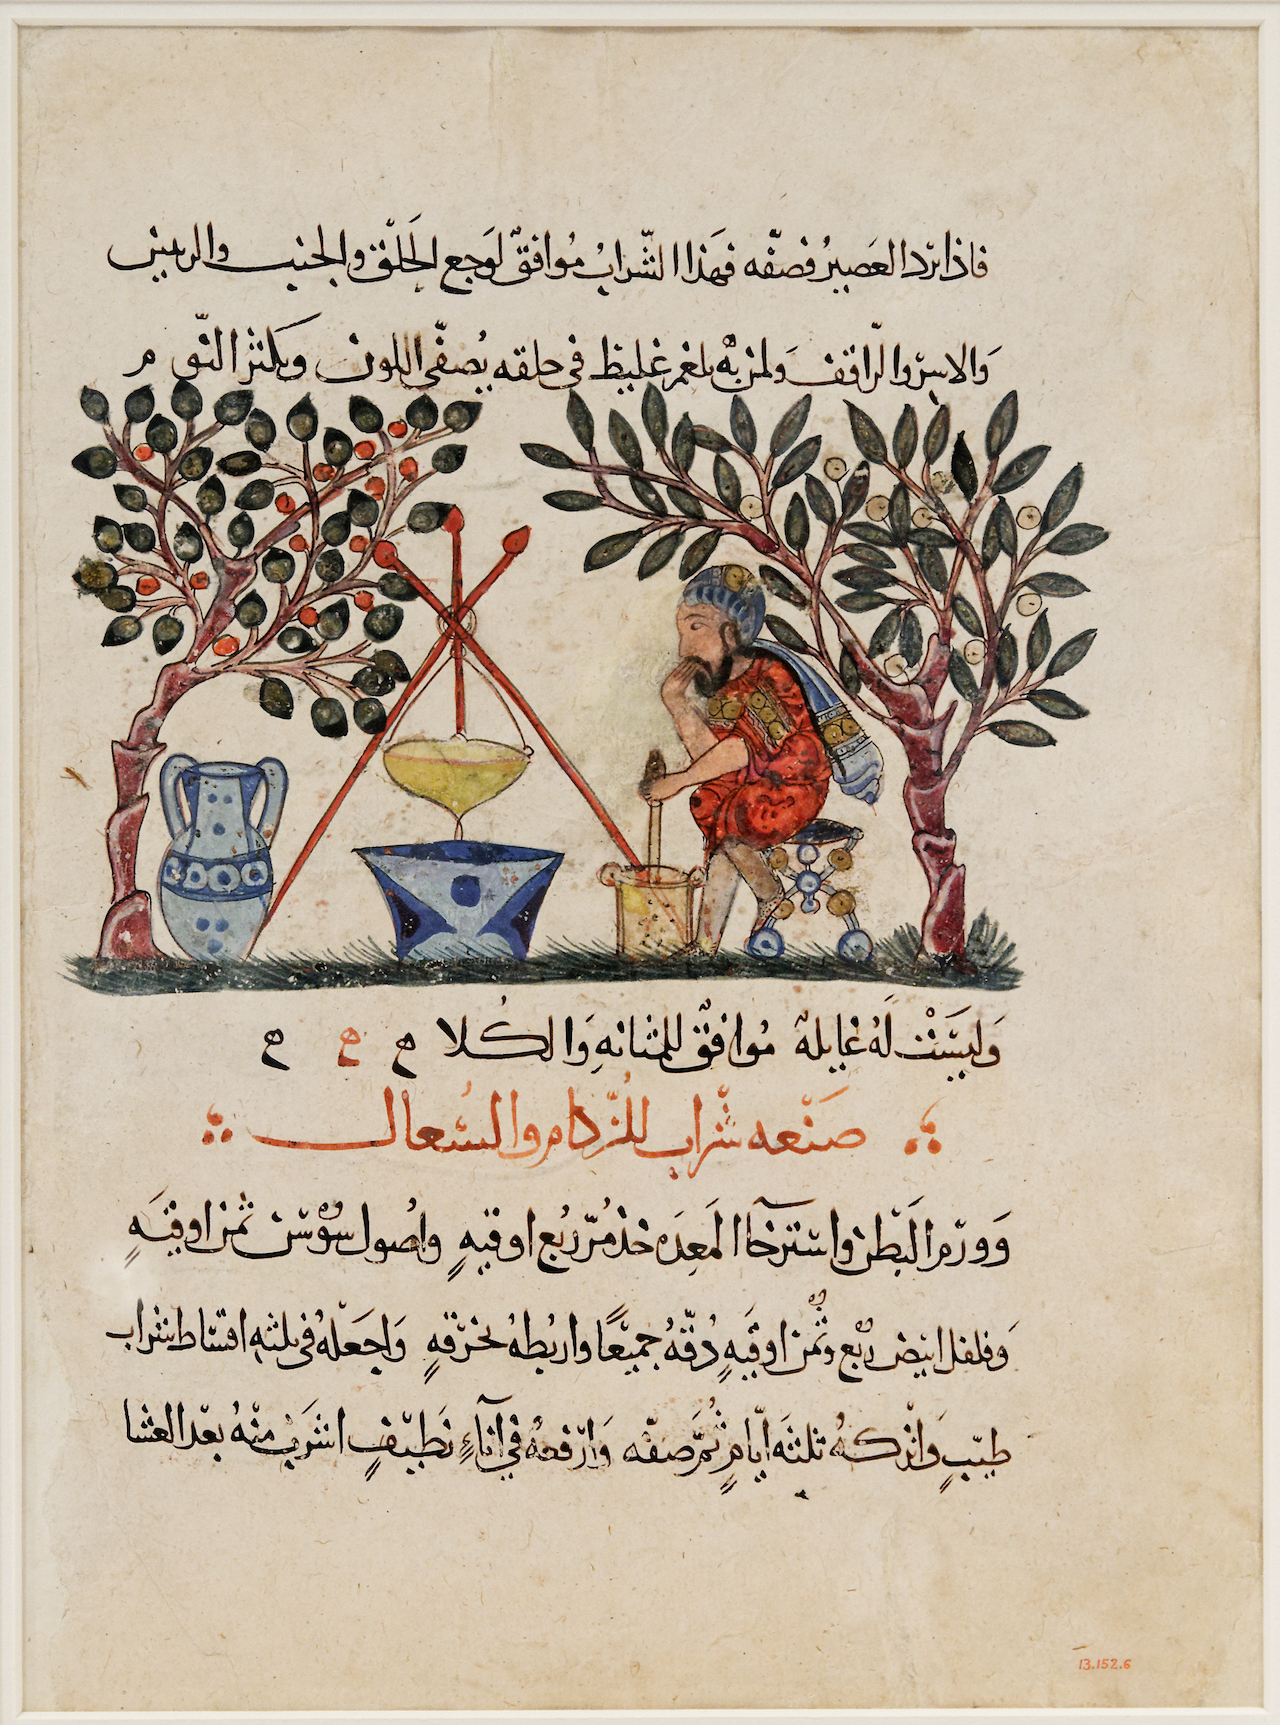 Paper folio from Materia Medica of Dioscorides showing a physician preparing an elixir, possibly from Baghdad, that is listed on the International Council of Museum's Red List of Iraqi cultural objects at risk (click to enlarge) (image via Wikipedia)